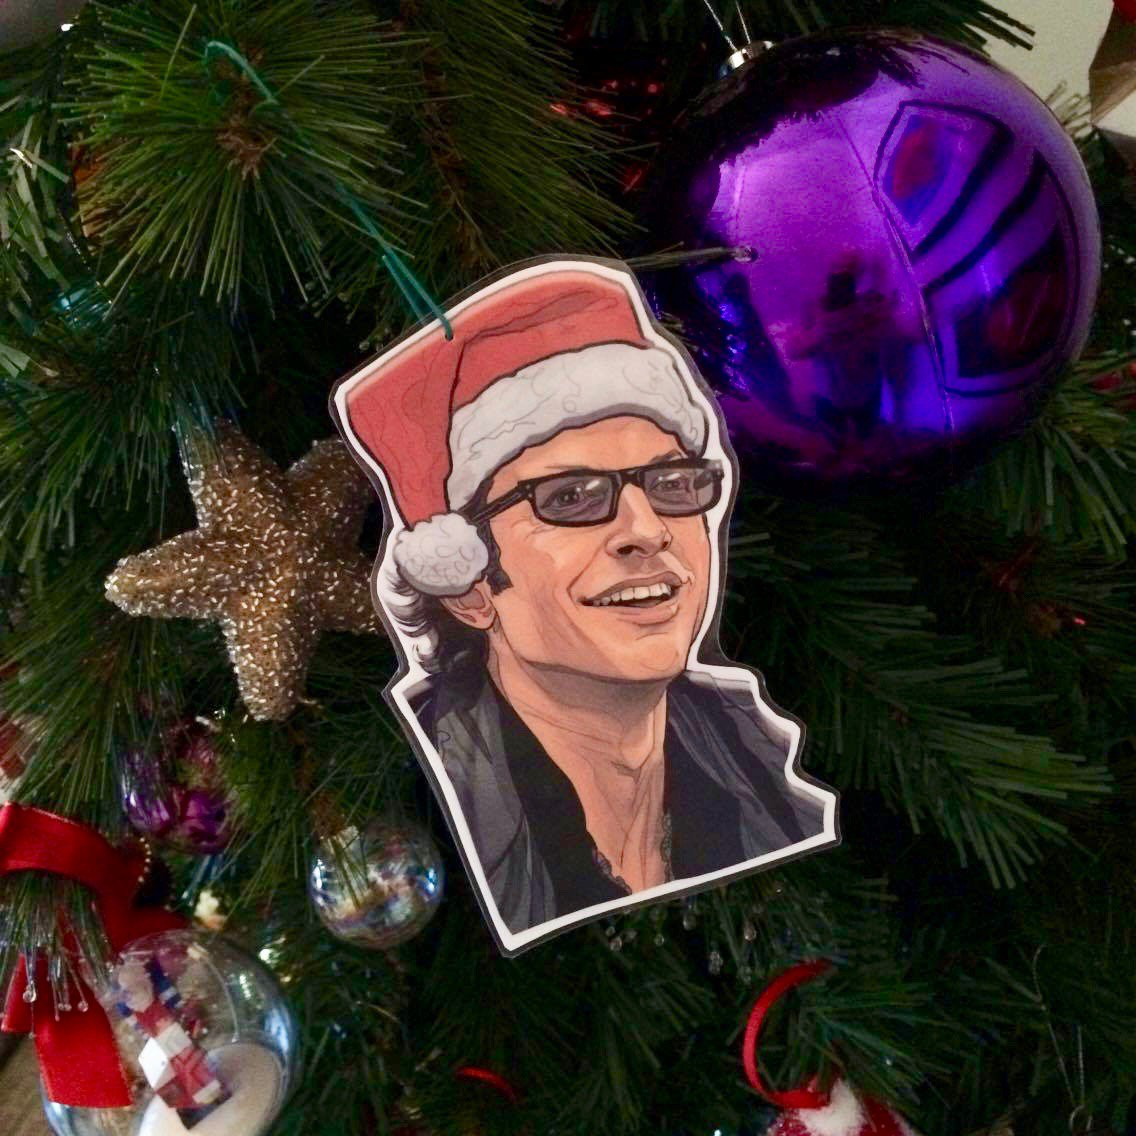 Never thought Id see Jeff Goldblum hanging from my Christmas tree, but thanks to @PJMcQuades Jurassic Park bauble, he found a way!🎄